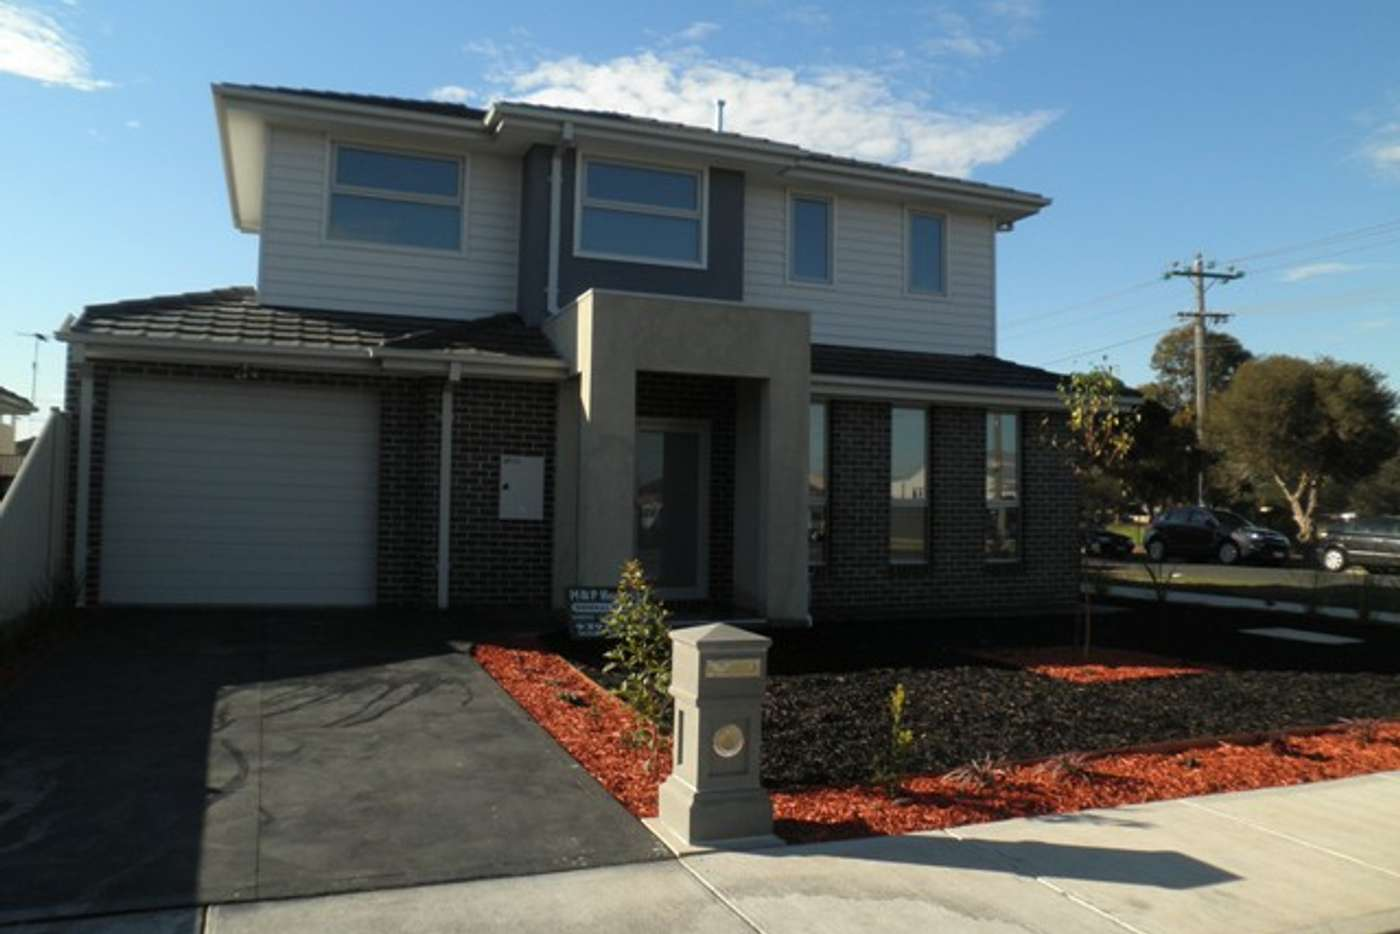 Main view of Homely house listing, 44 Misten Avenue, Altona North VIC 3025